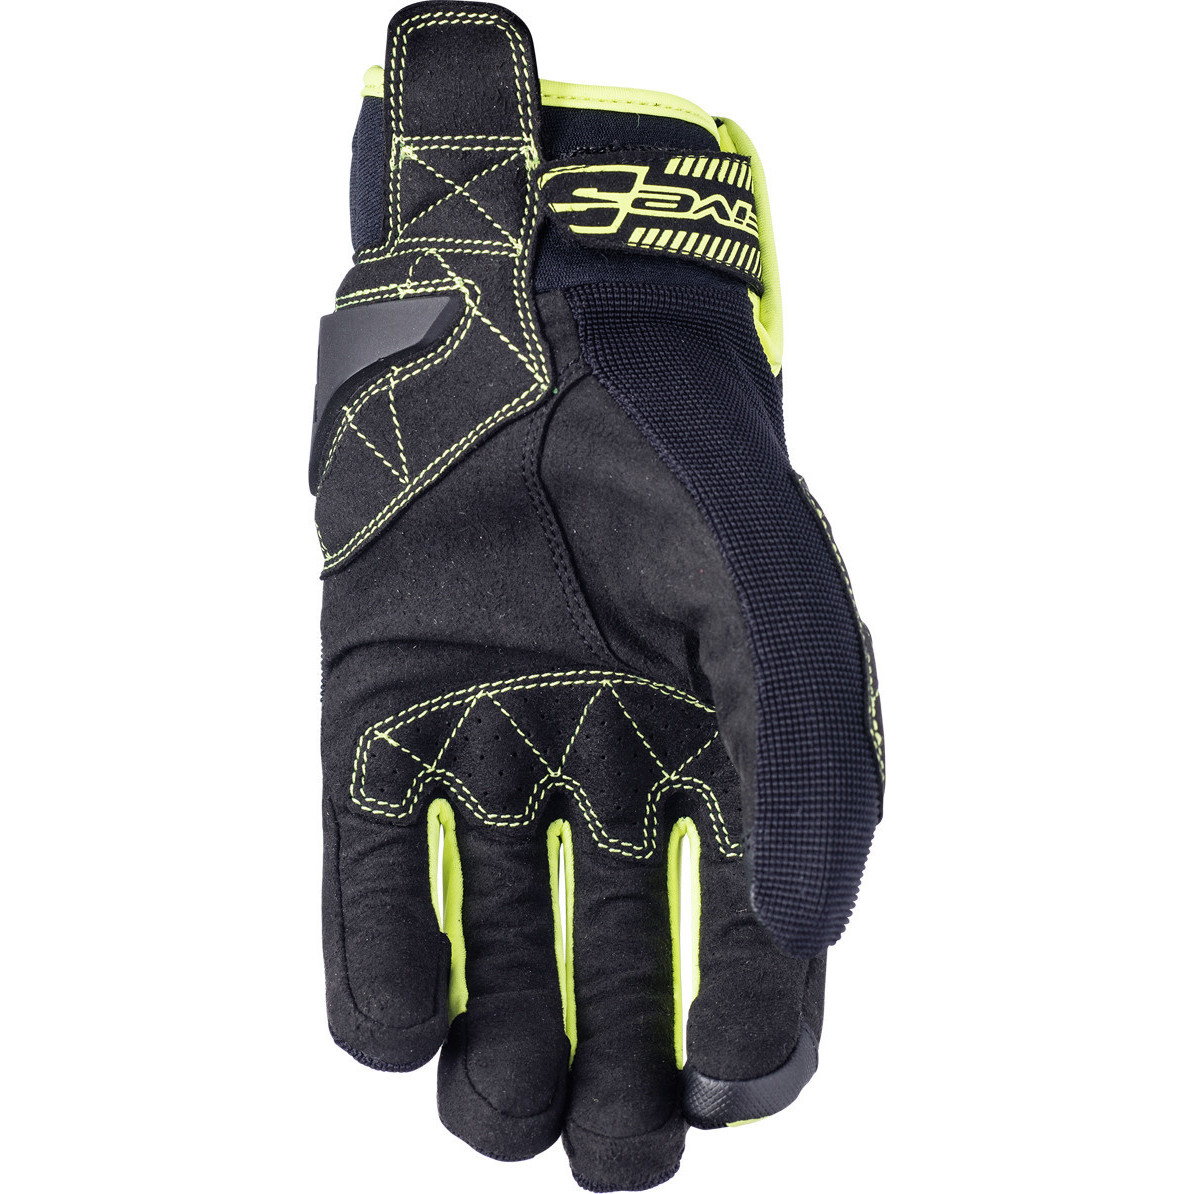 Five-RS3-Motorcycle-Gloves-Motorbike-Bike-Armour-Urban-Touch-Screen-GhostBikes thumbnail 16